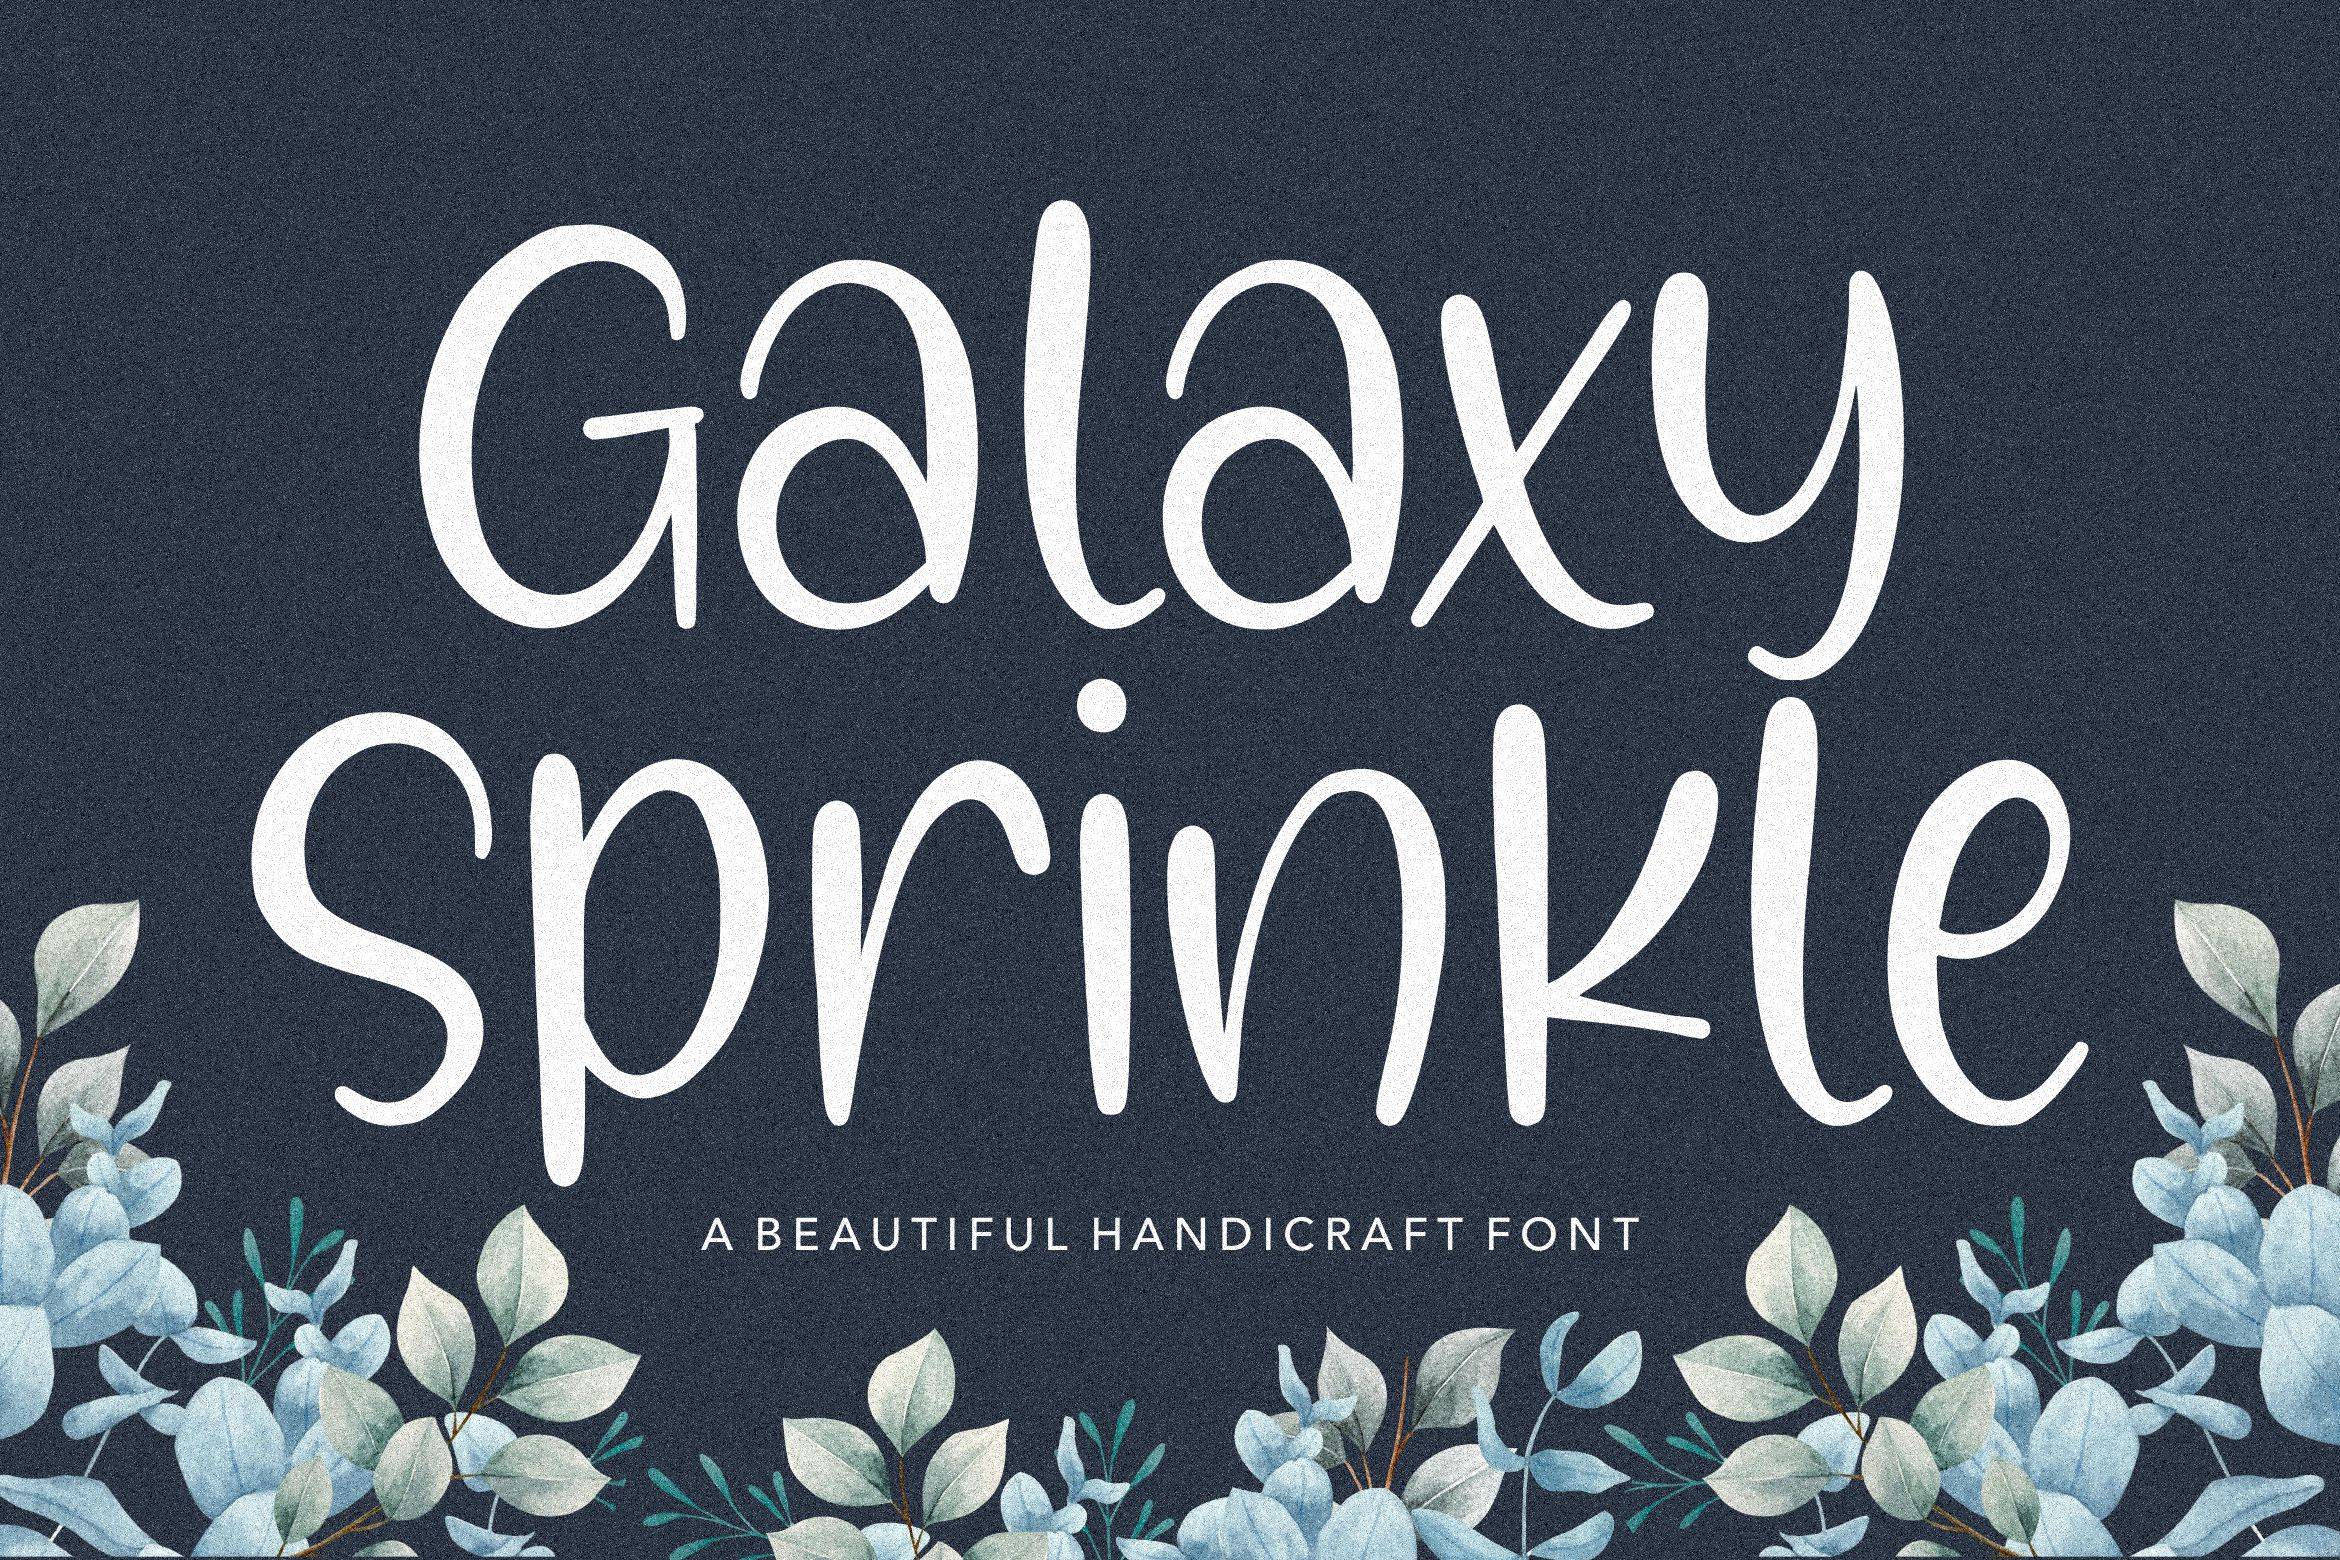 Galaxy Sprinkle Beautiful Handcraft Script Font-1